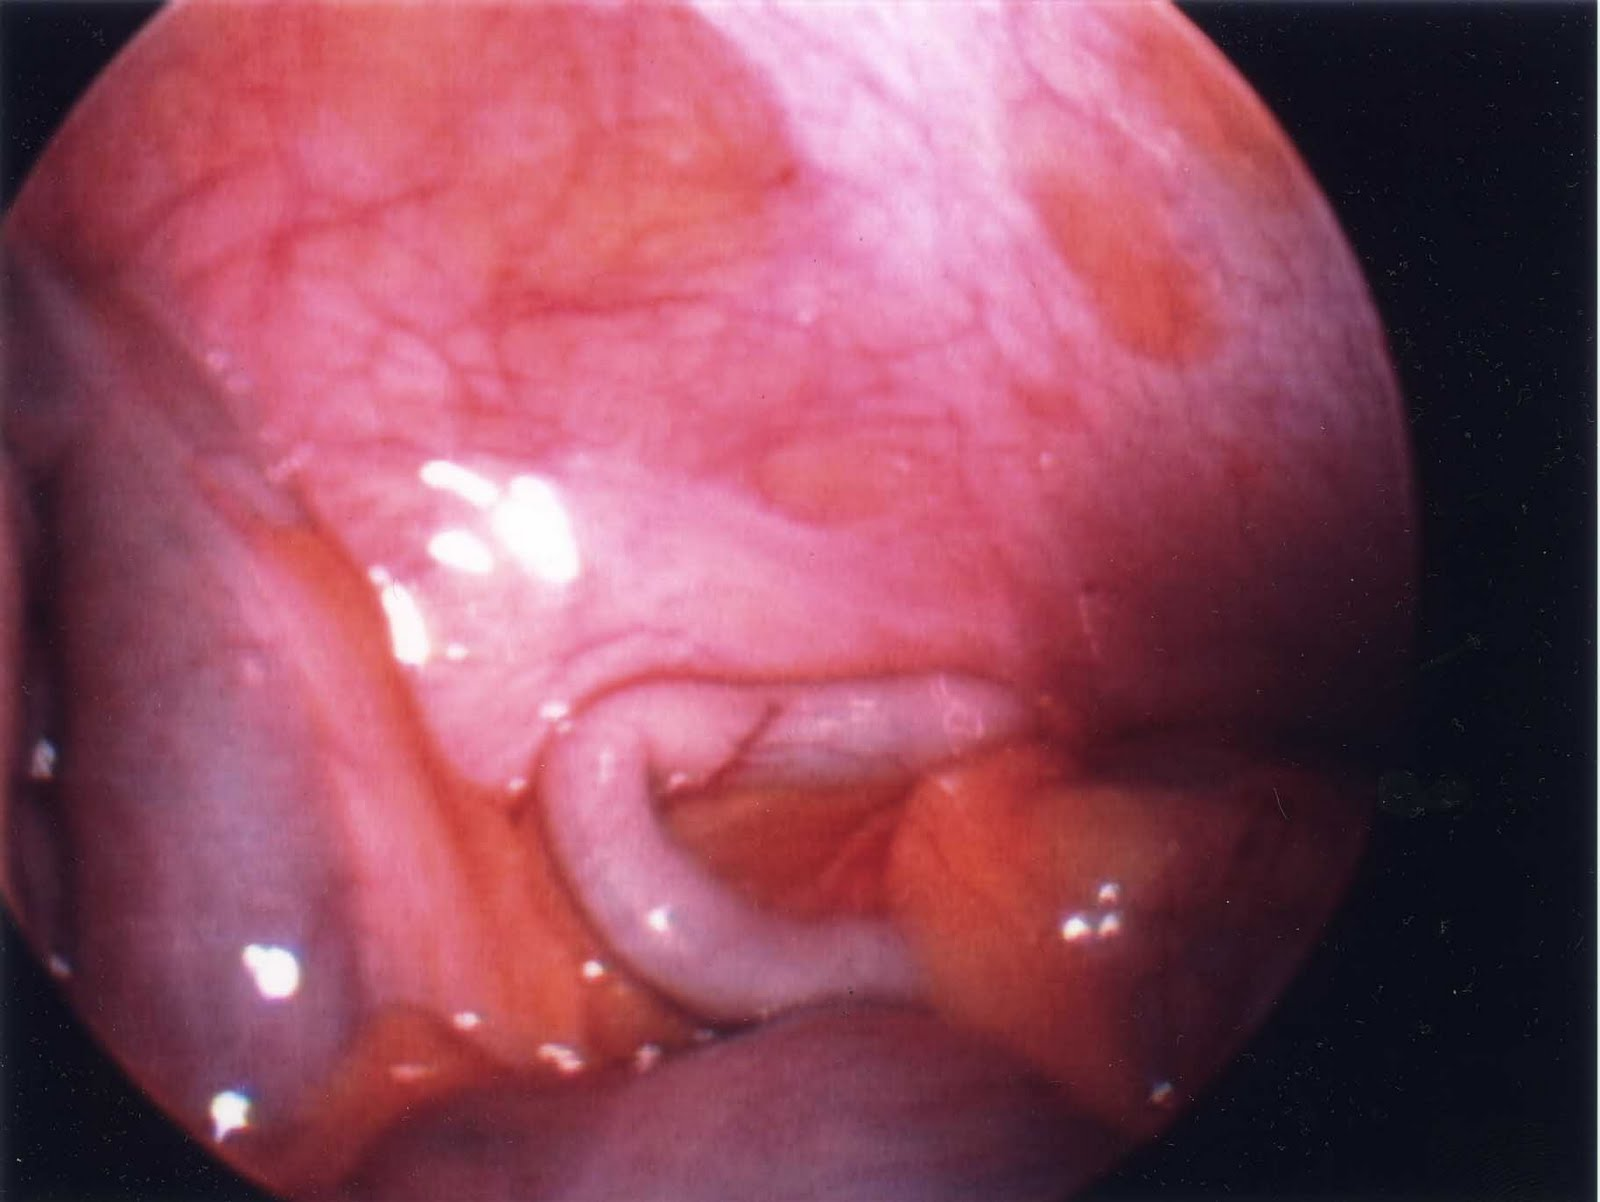 Normal_appendix_surgically_reoved_appendix+%281%29.jpg